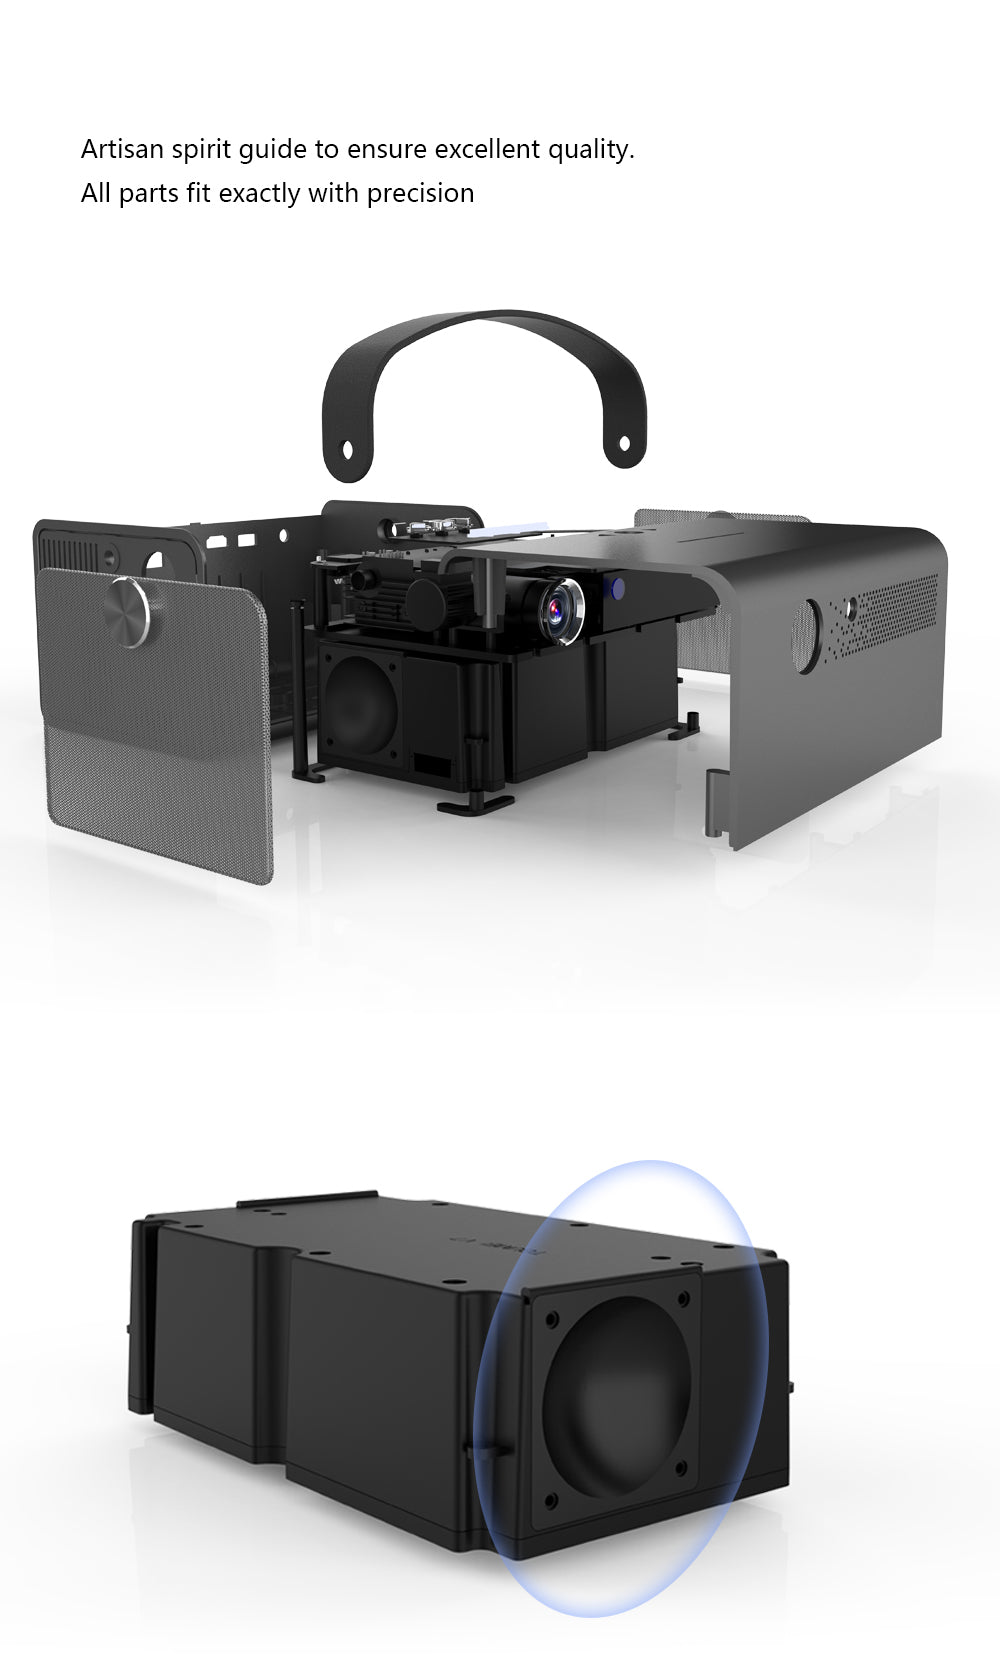 Toumei V7 HD Projector Features 03